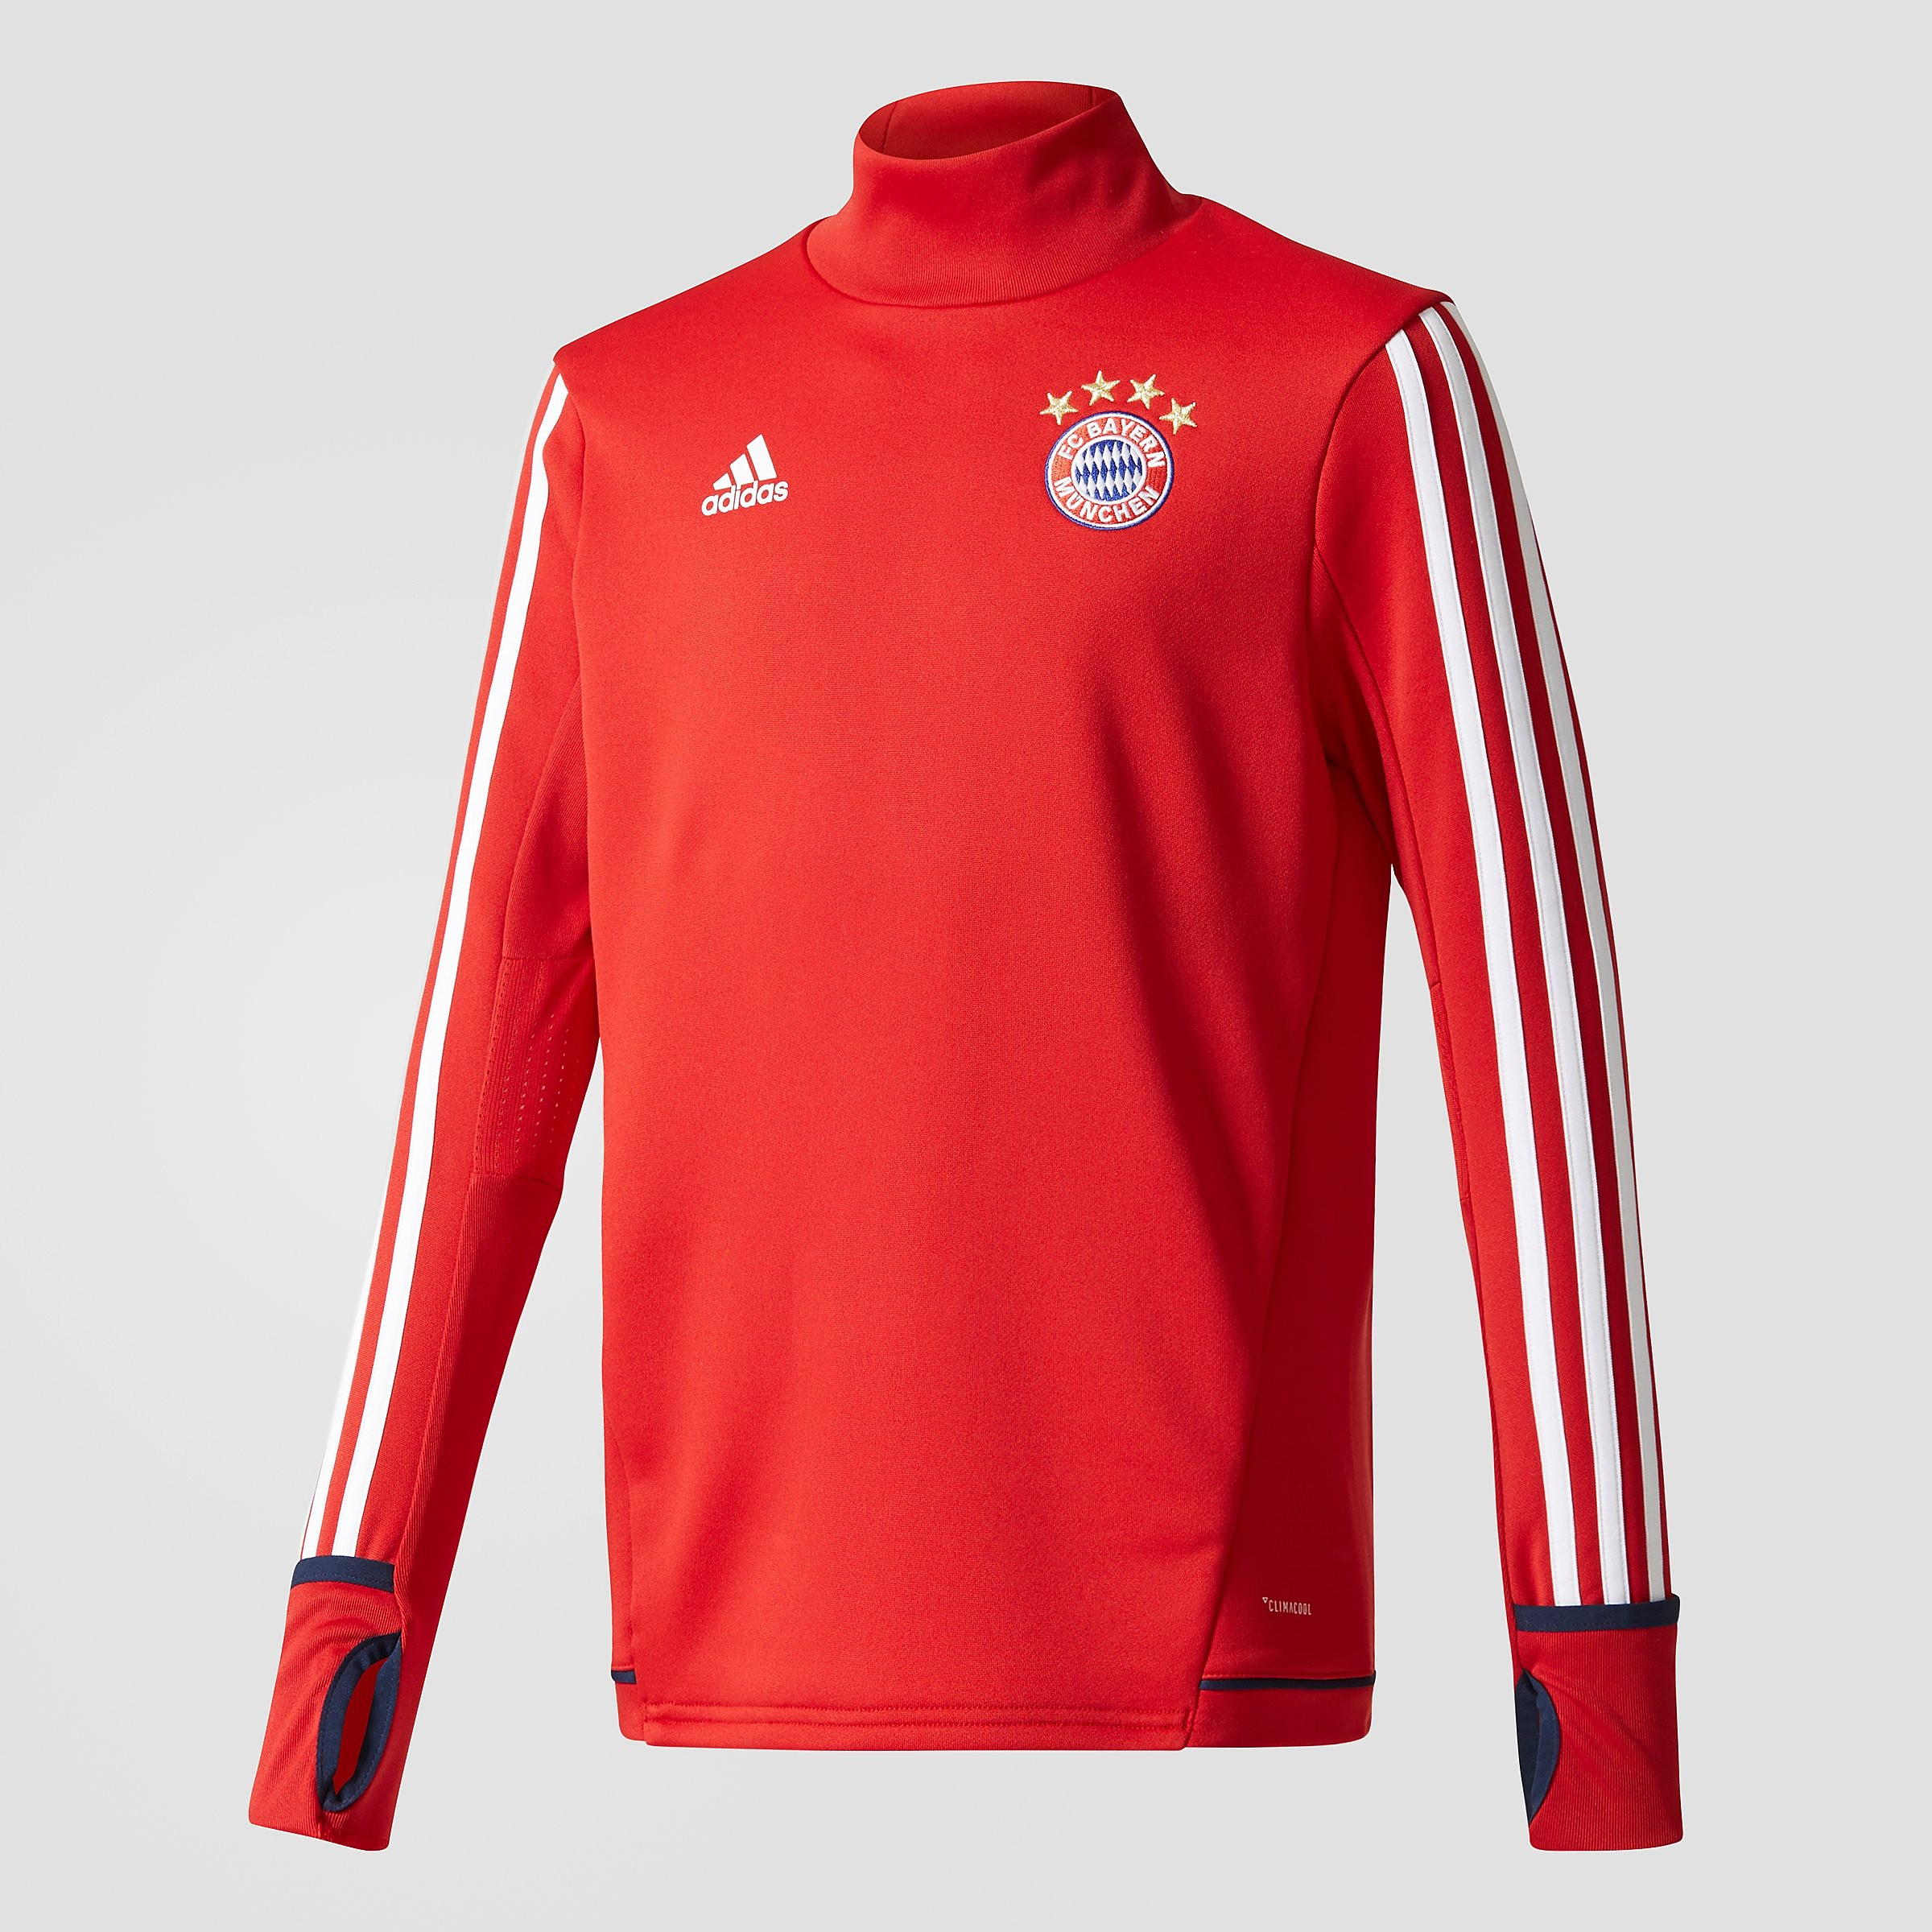 ADIDAS FC BAYERN MÜNCHEN TRAININGSTOP 17/18 ROOD/WIT KINDEREN